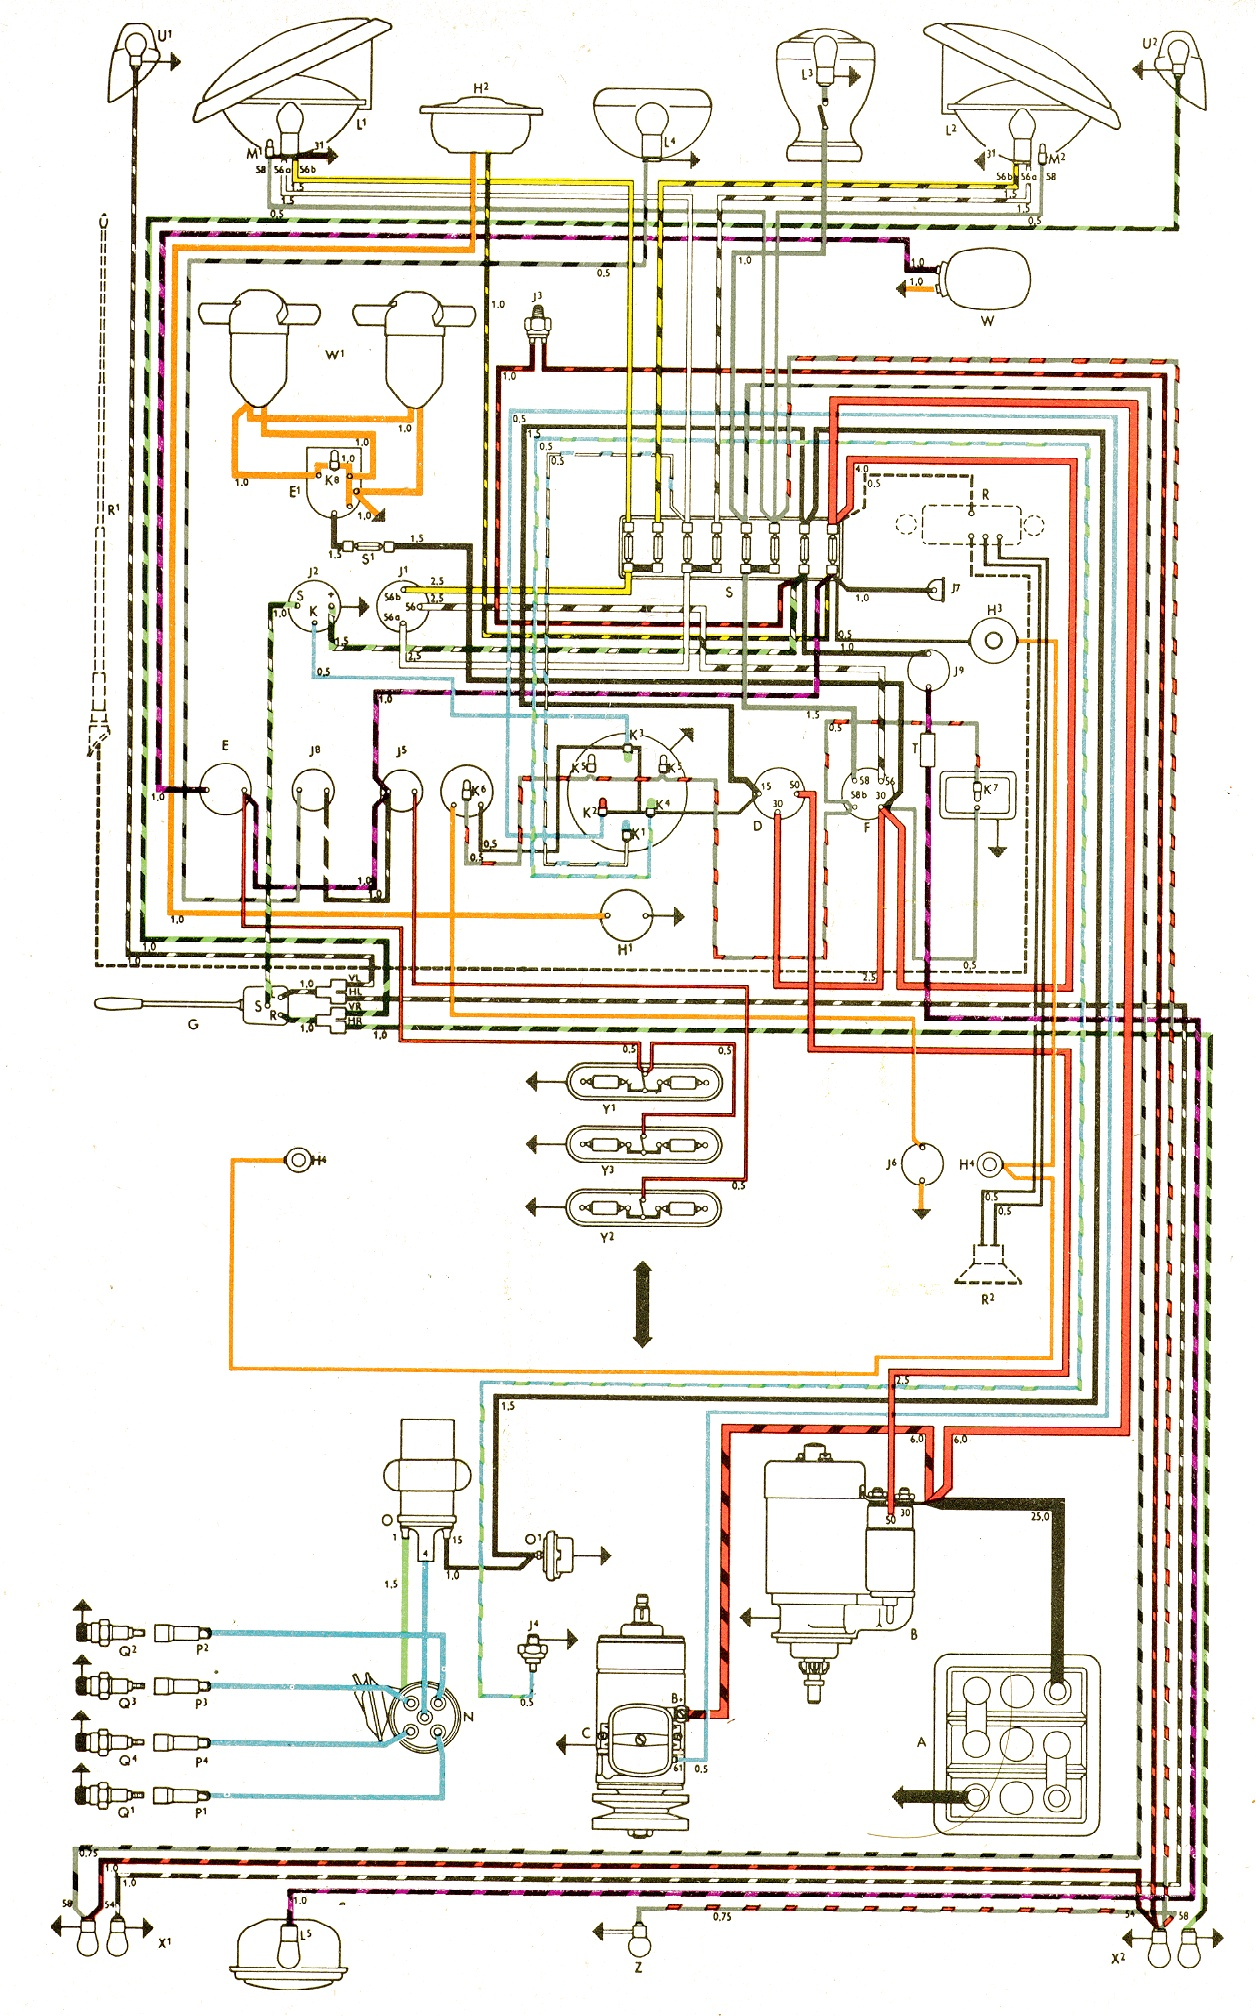 hight resolution of 2001 vw new beetle wiring diagram